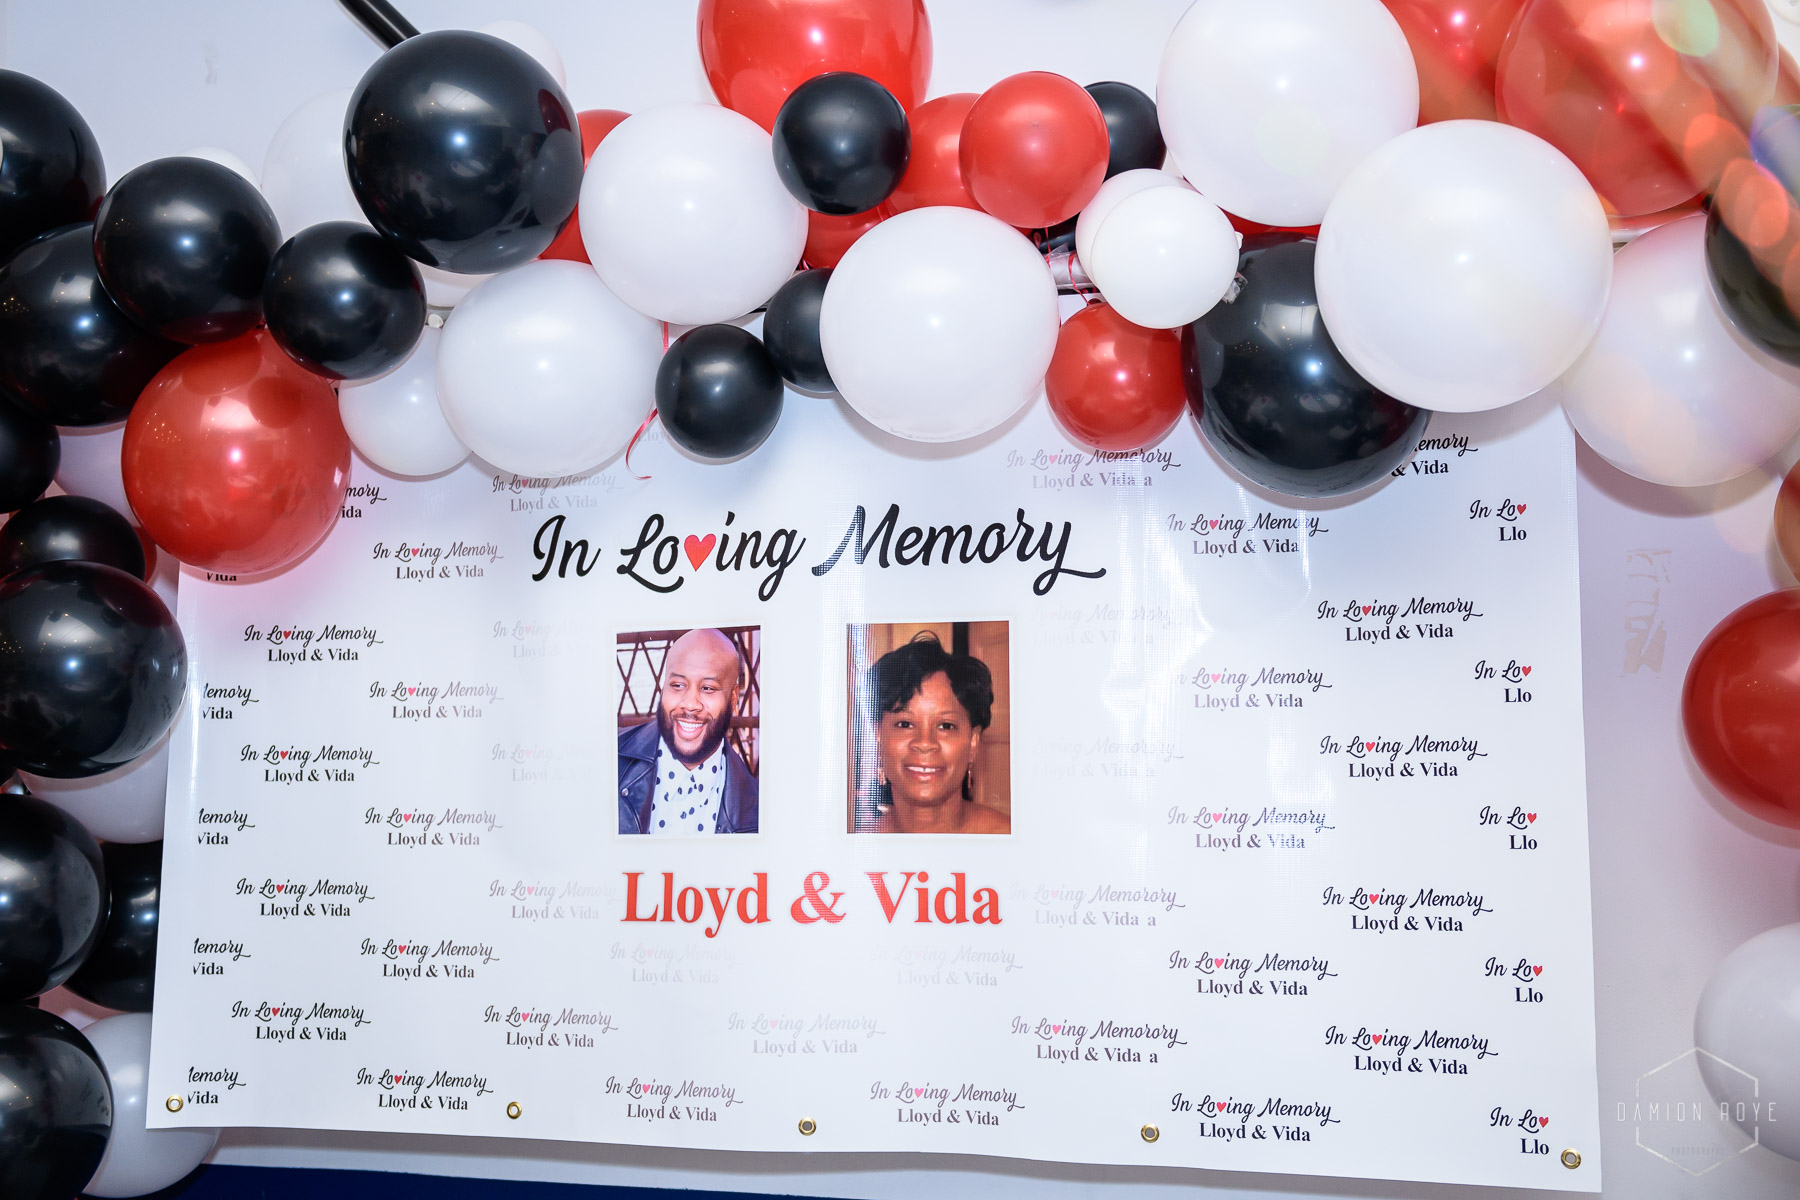 Remembering The Touch Of Teddy/Vida